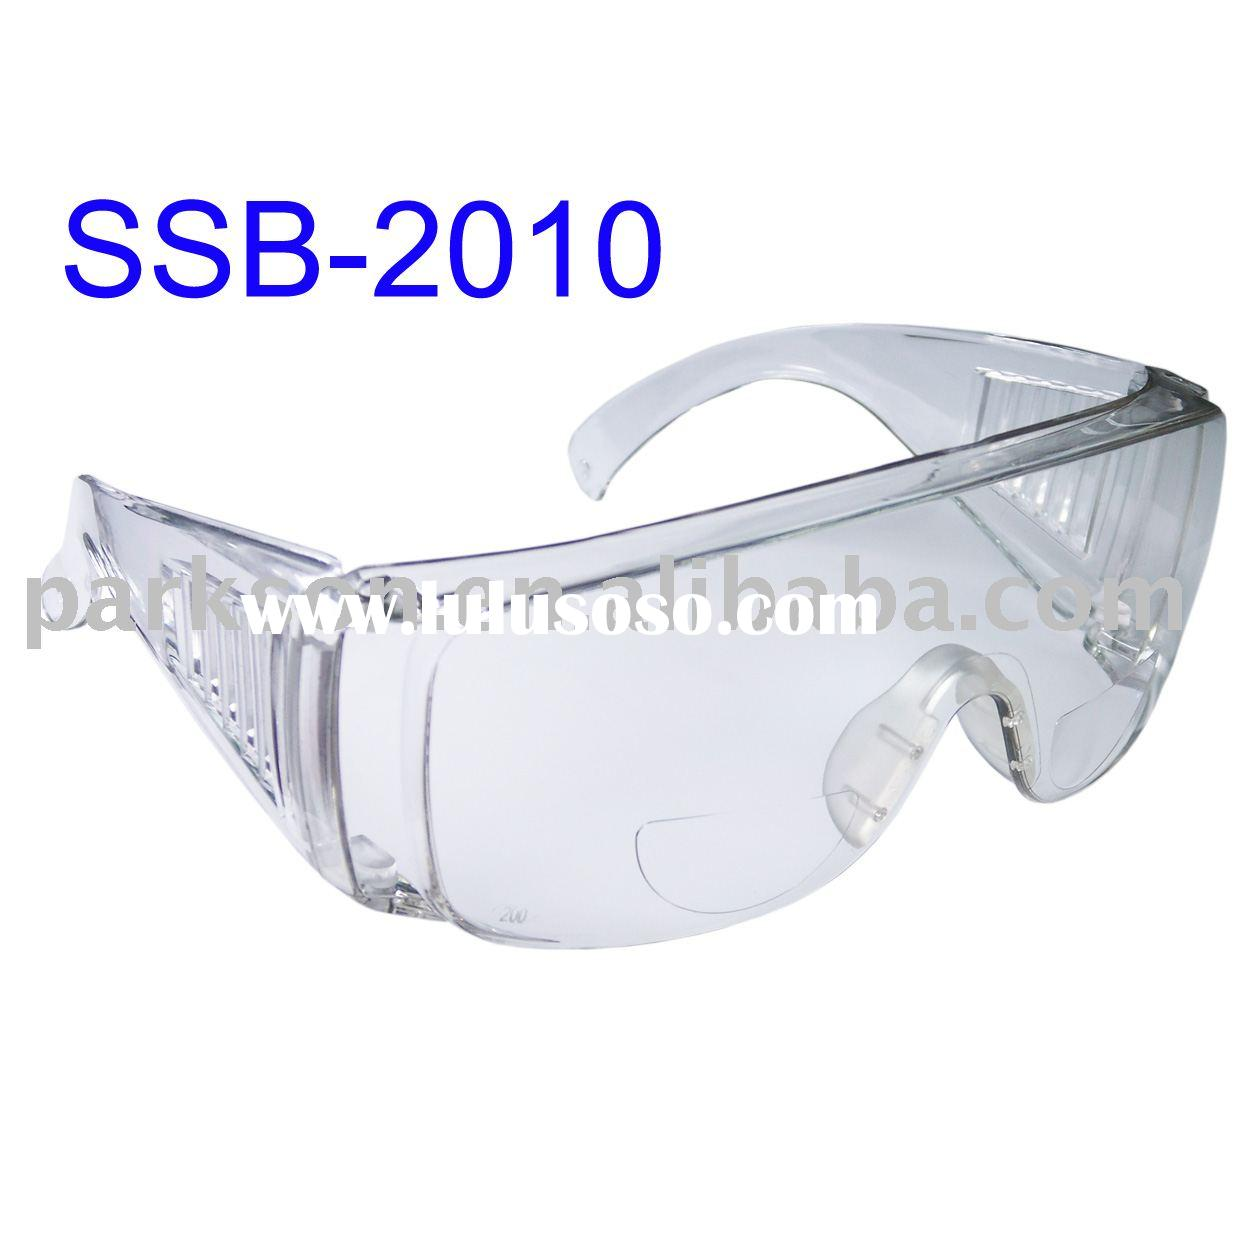 safety spectacle, protection eyewear,safety glasses, sports glasses